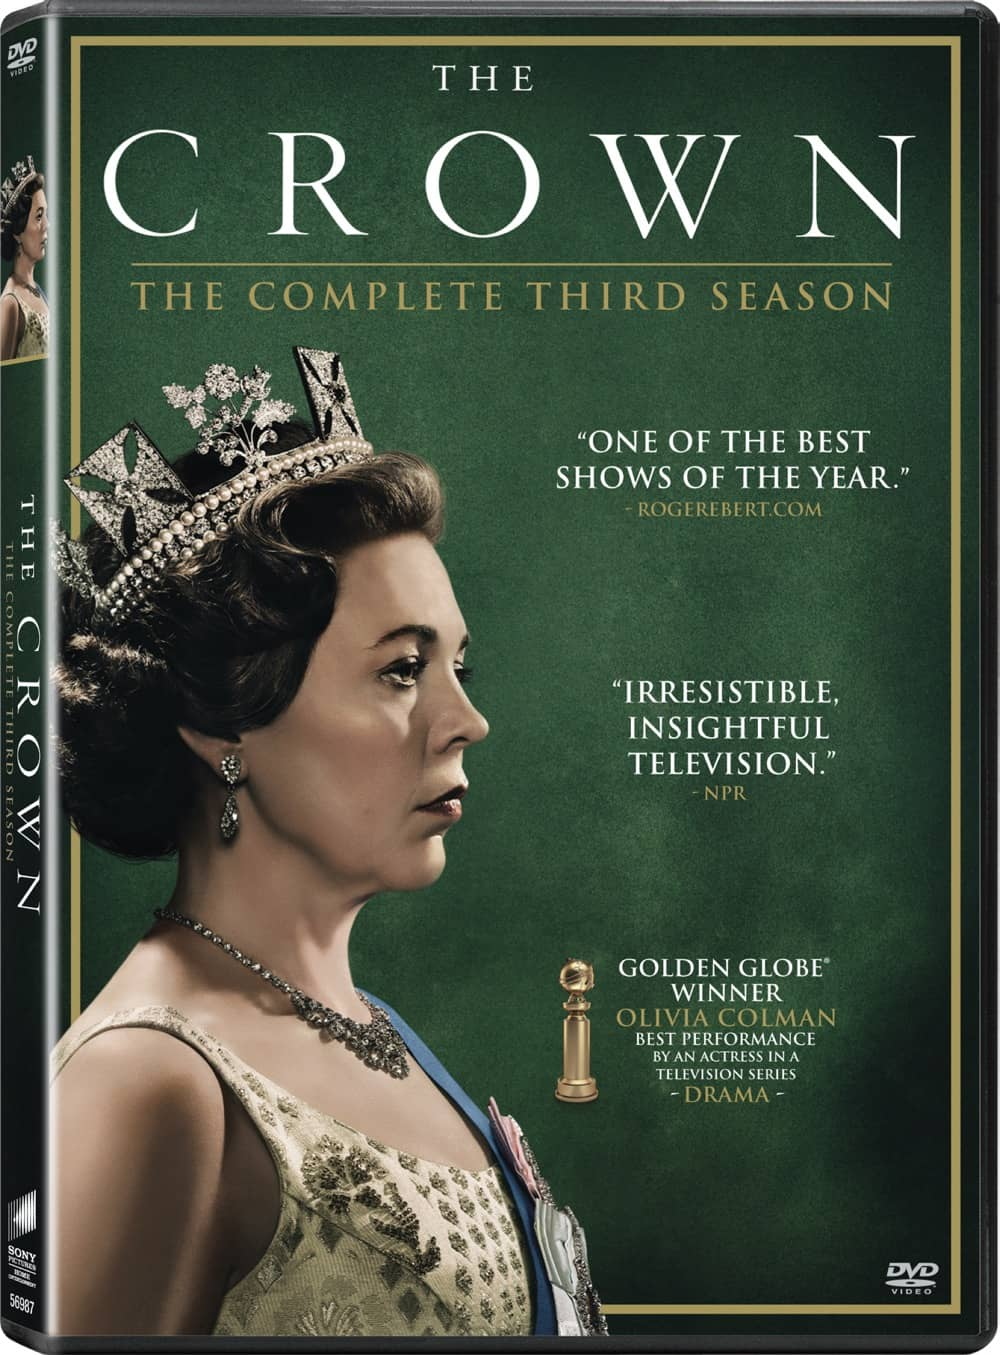 The Crown Season 3 DVD